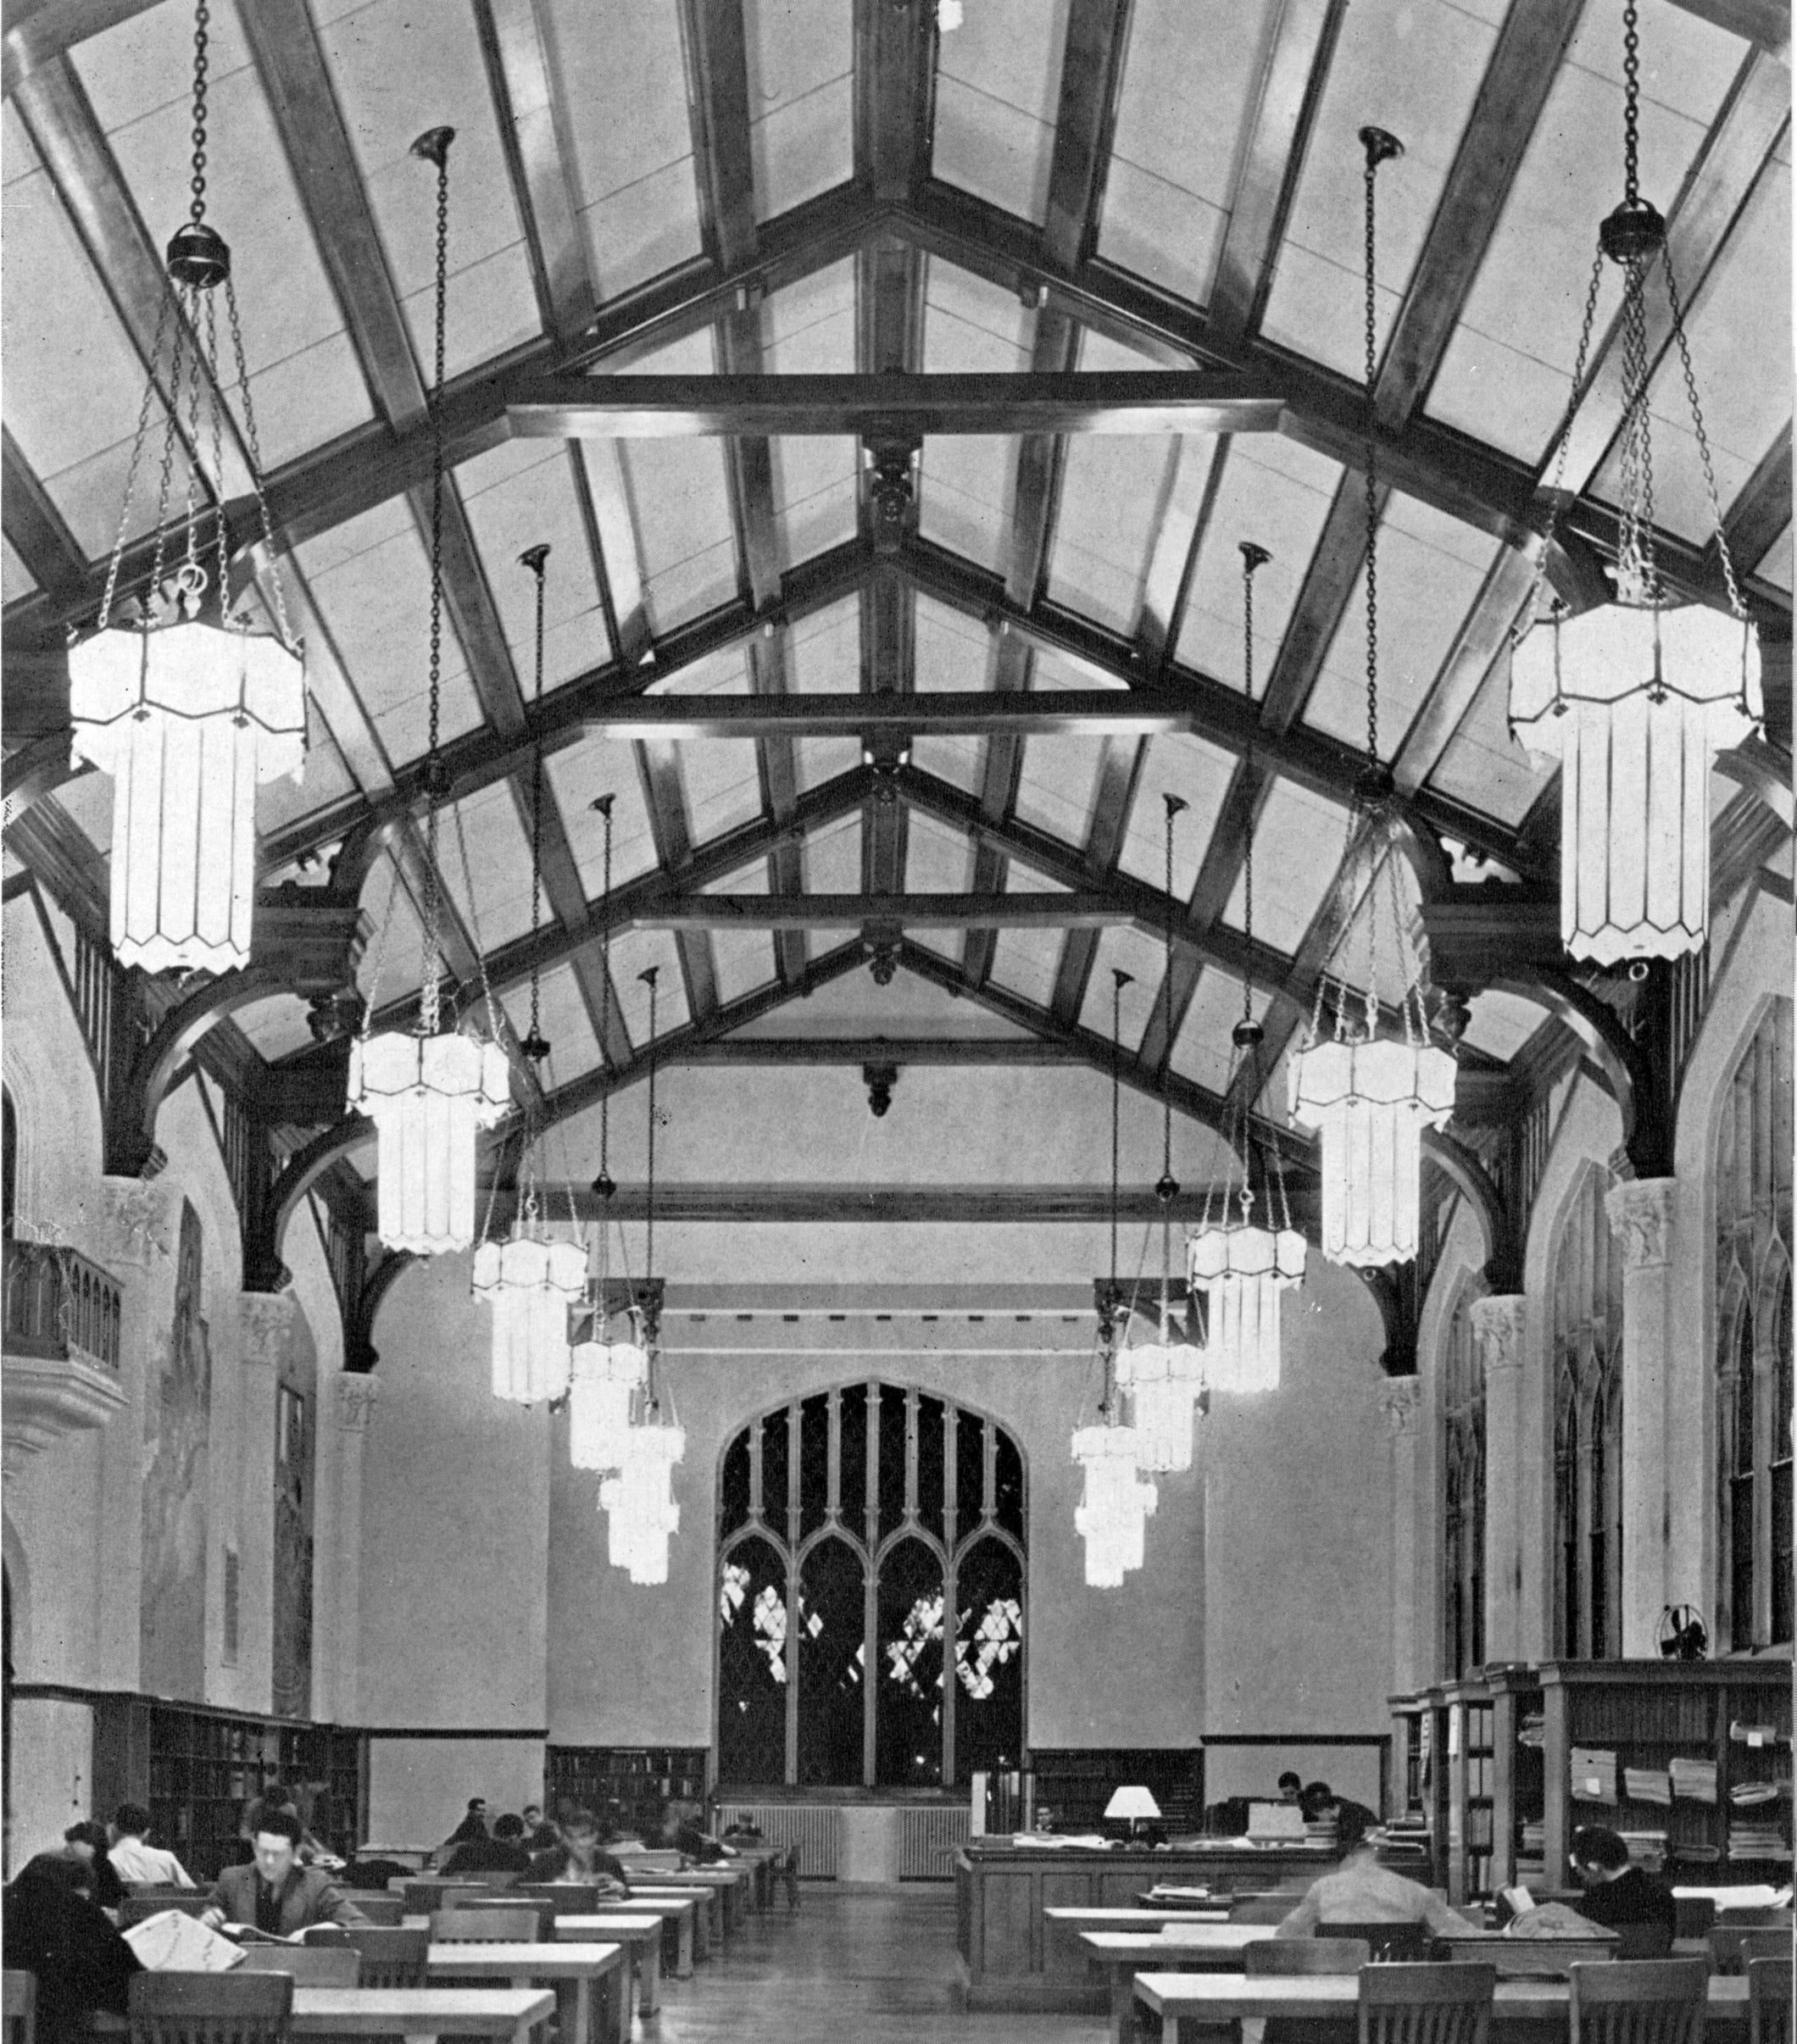 In a vintage black-and-white photo of the Great Room, students study at large wooden tables. The building's heavy wooden ceiling beams, ornate light fixtures, and leaded glass windows are visible.